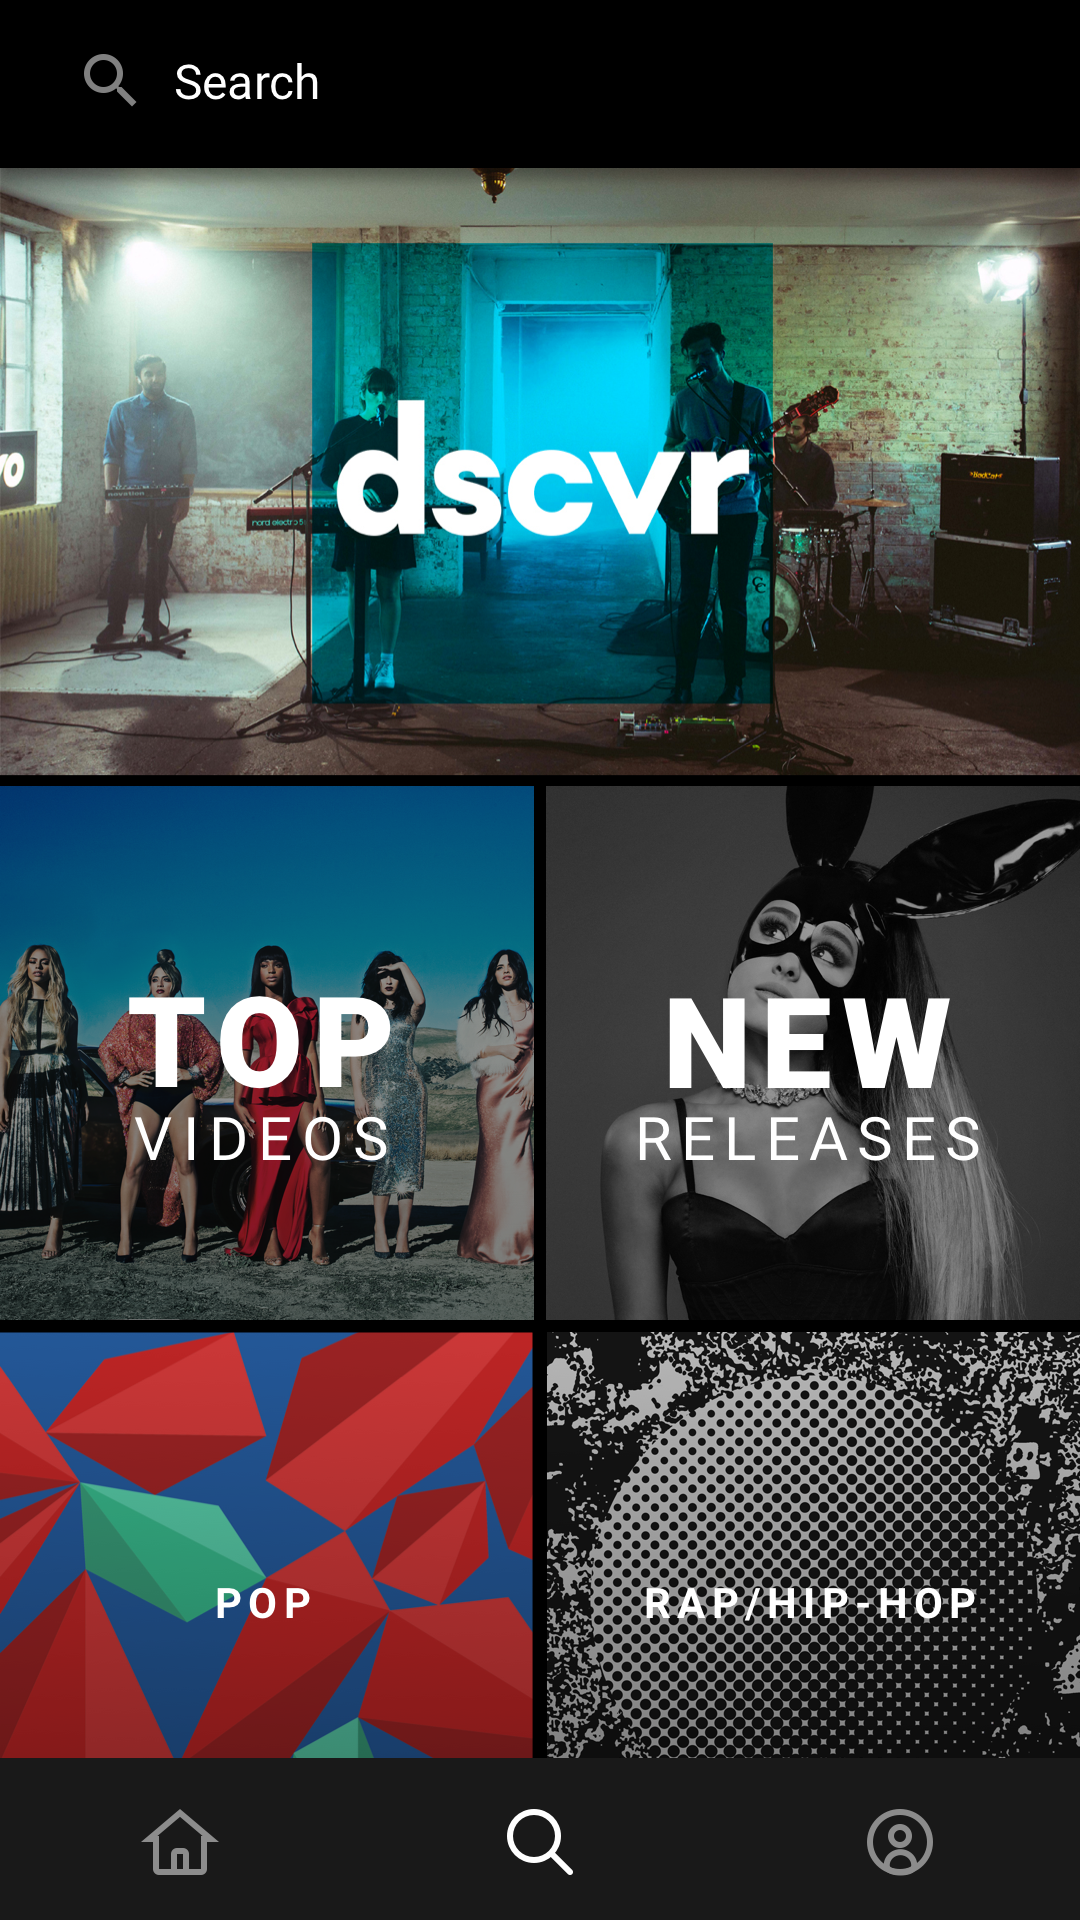 Vevo - Watch HD Music Videos: Amazon.co.uk: Appstore for